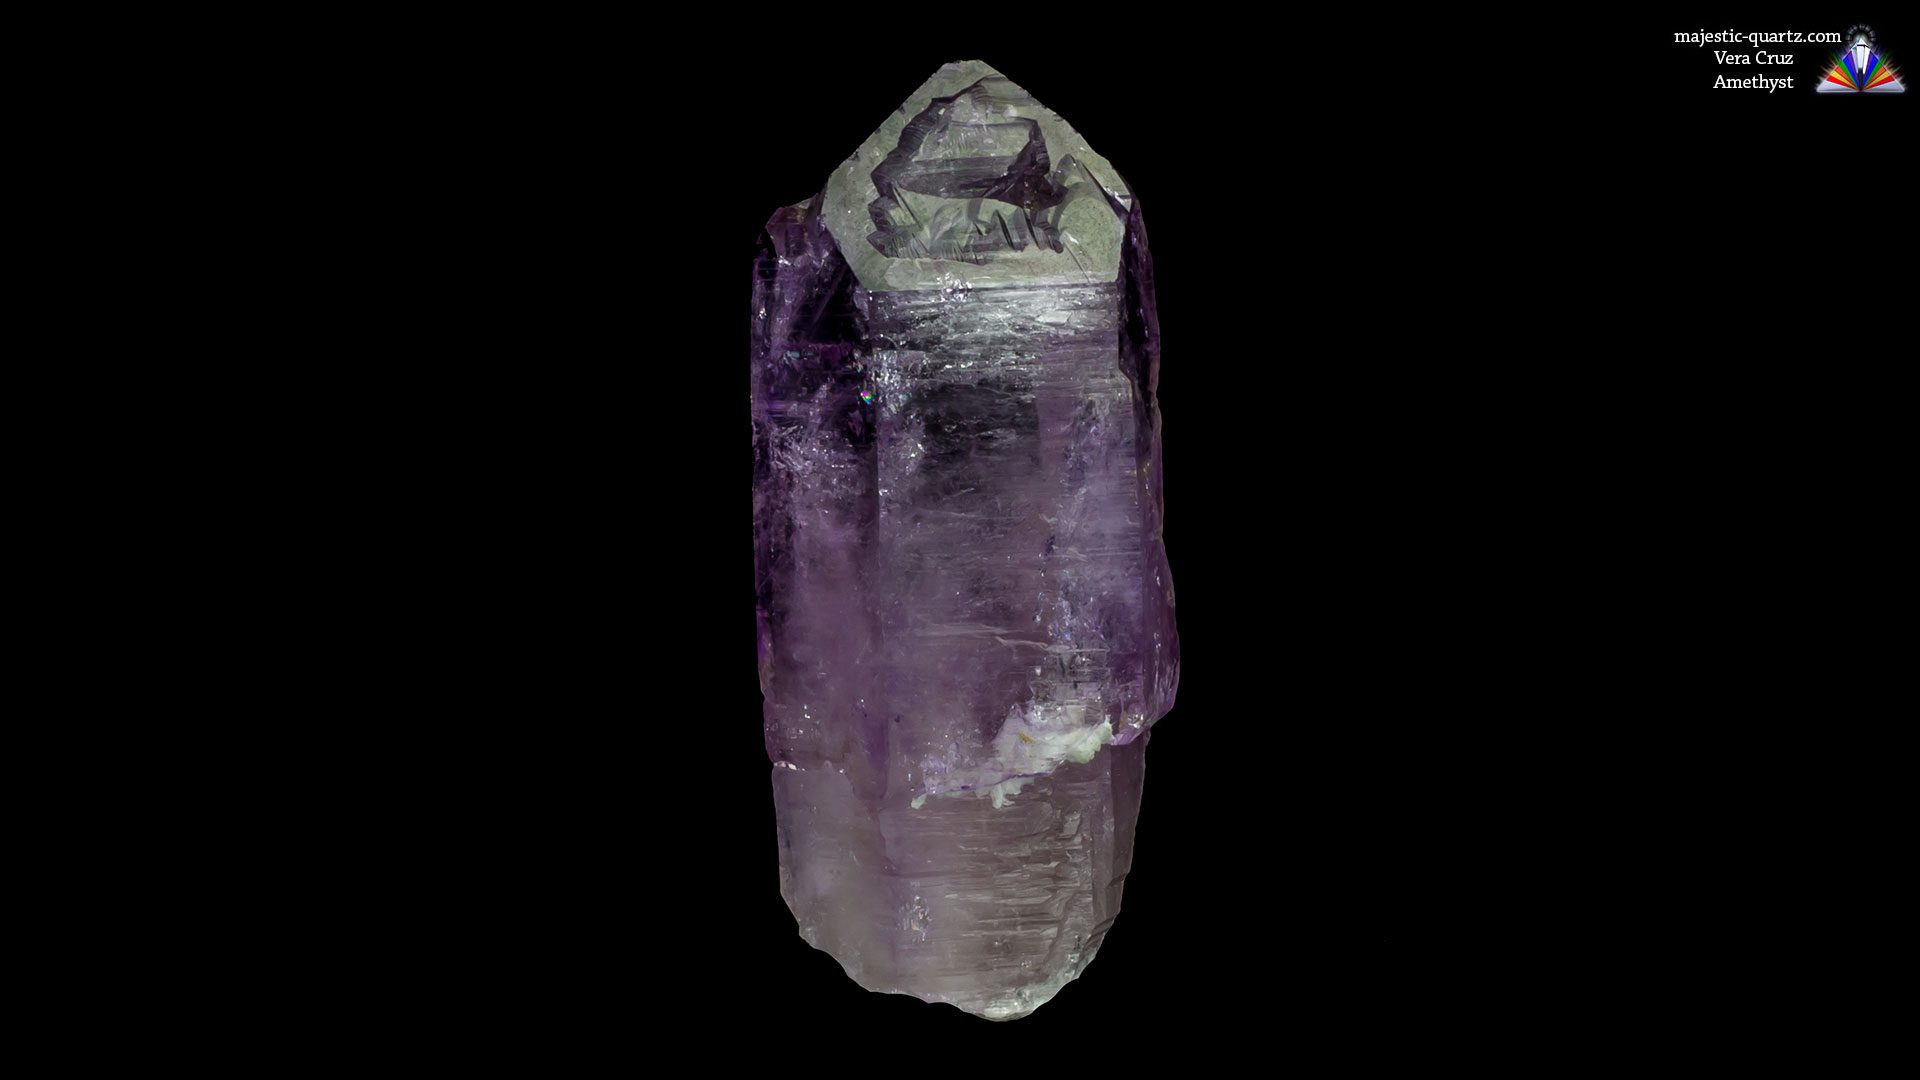 Vera Cruz Amethyst - Photograph By Anthony Bradford